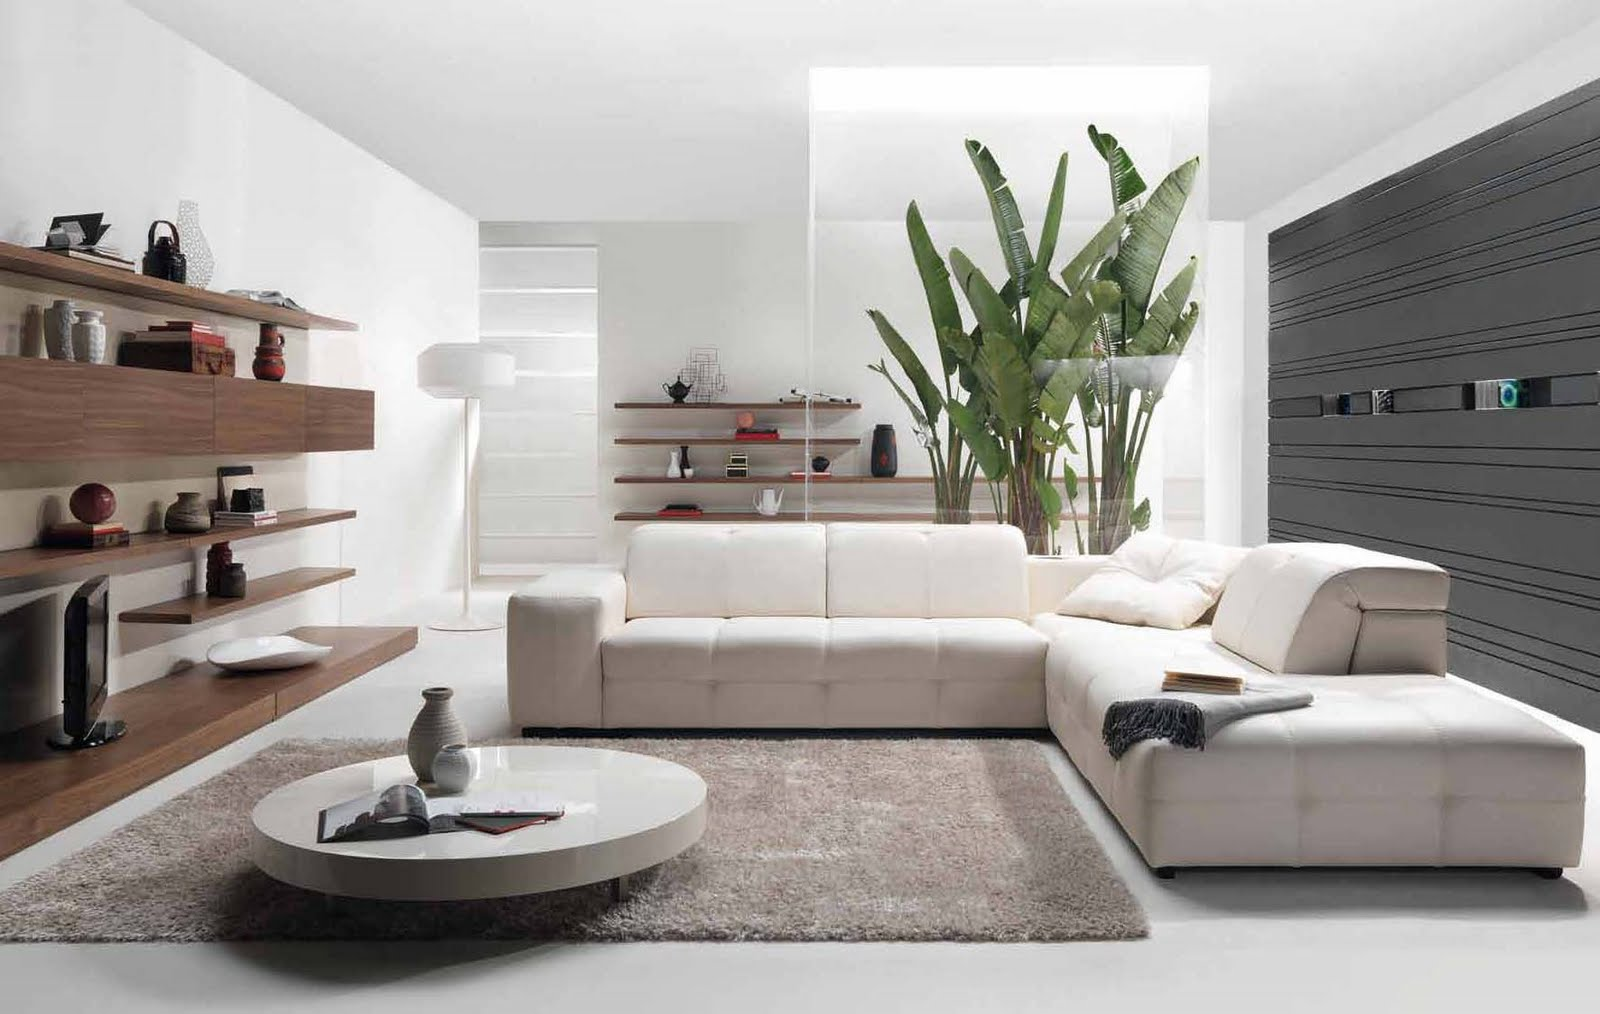 Modern home interior furniture designs diy ideas Living room furniture design ideas